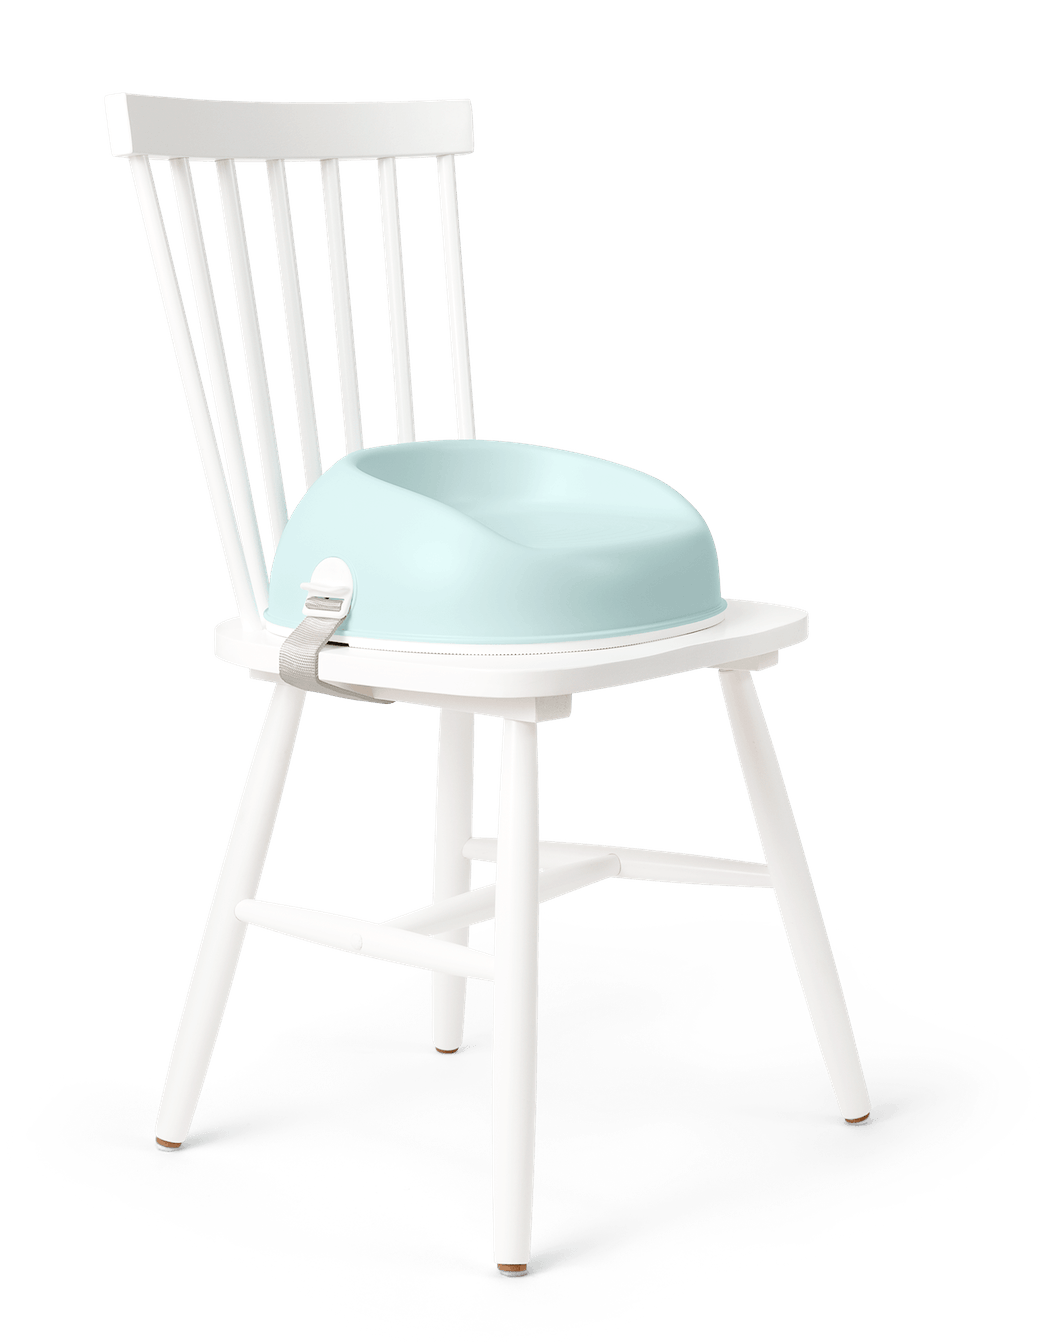 f499f6075f1 BABYBJÖRN Booster Seat is a smart solution that you place on a dining chair  to help your child up to the table. Buy from BABYBJÖRN today!